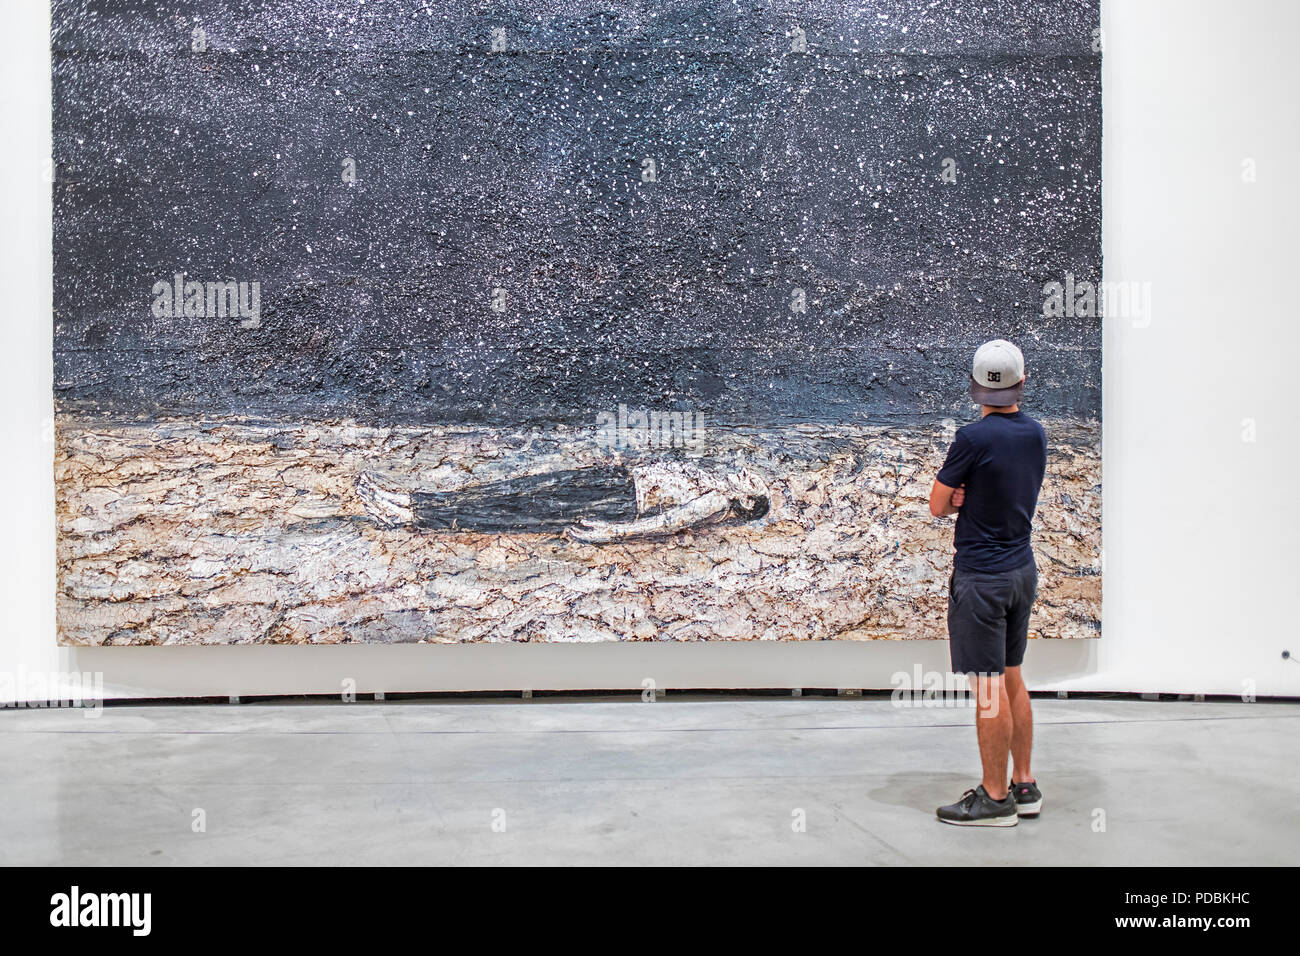 `The renowned orders of the night´, by Anselm Kiefer, museum collection, Guggenheim Museum,  Bilbao, Spain - Stock Image